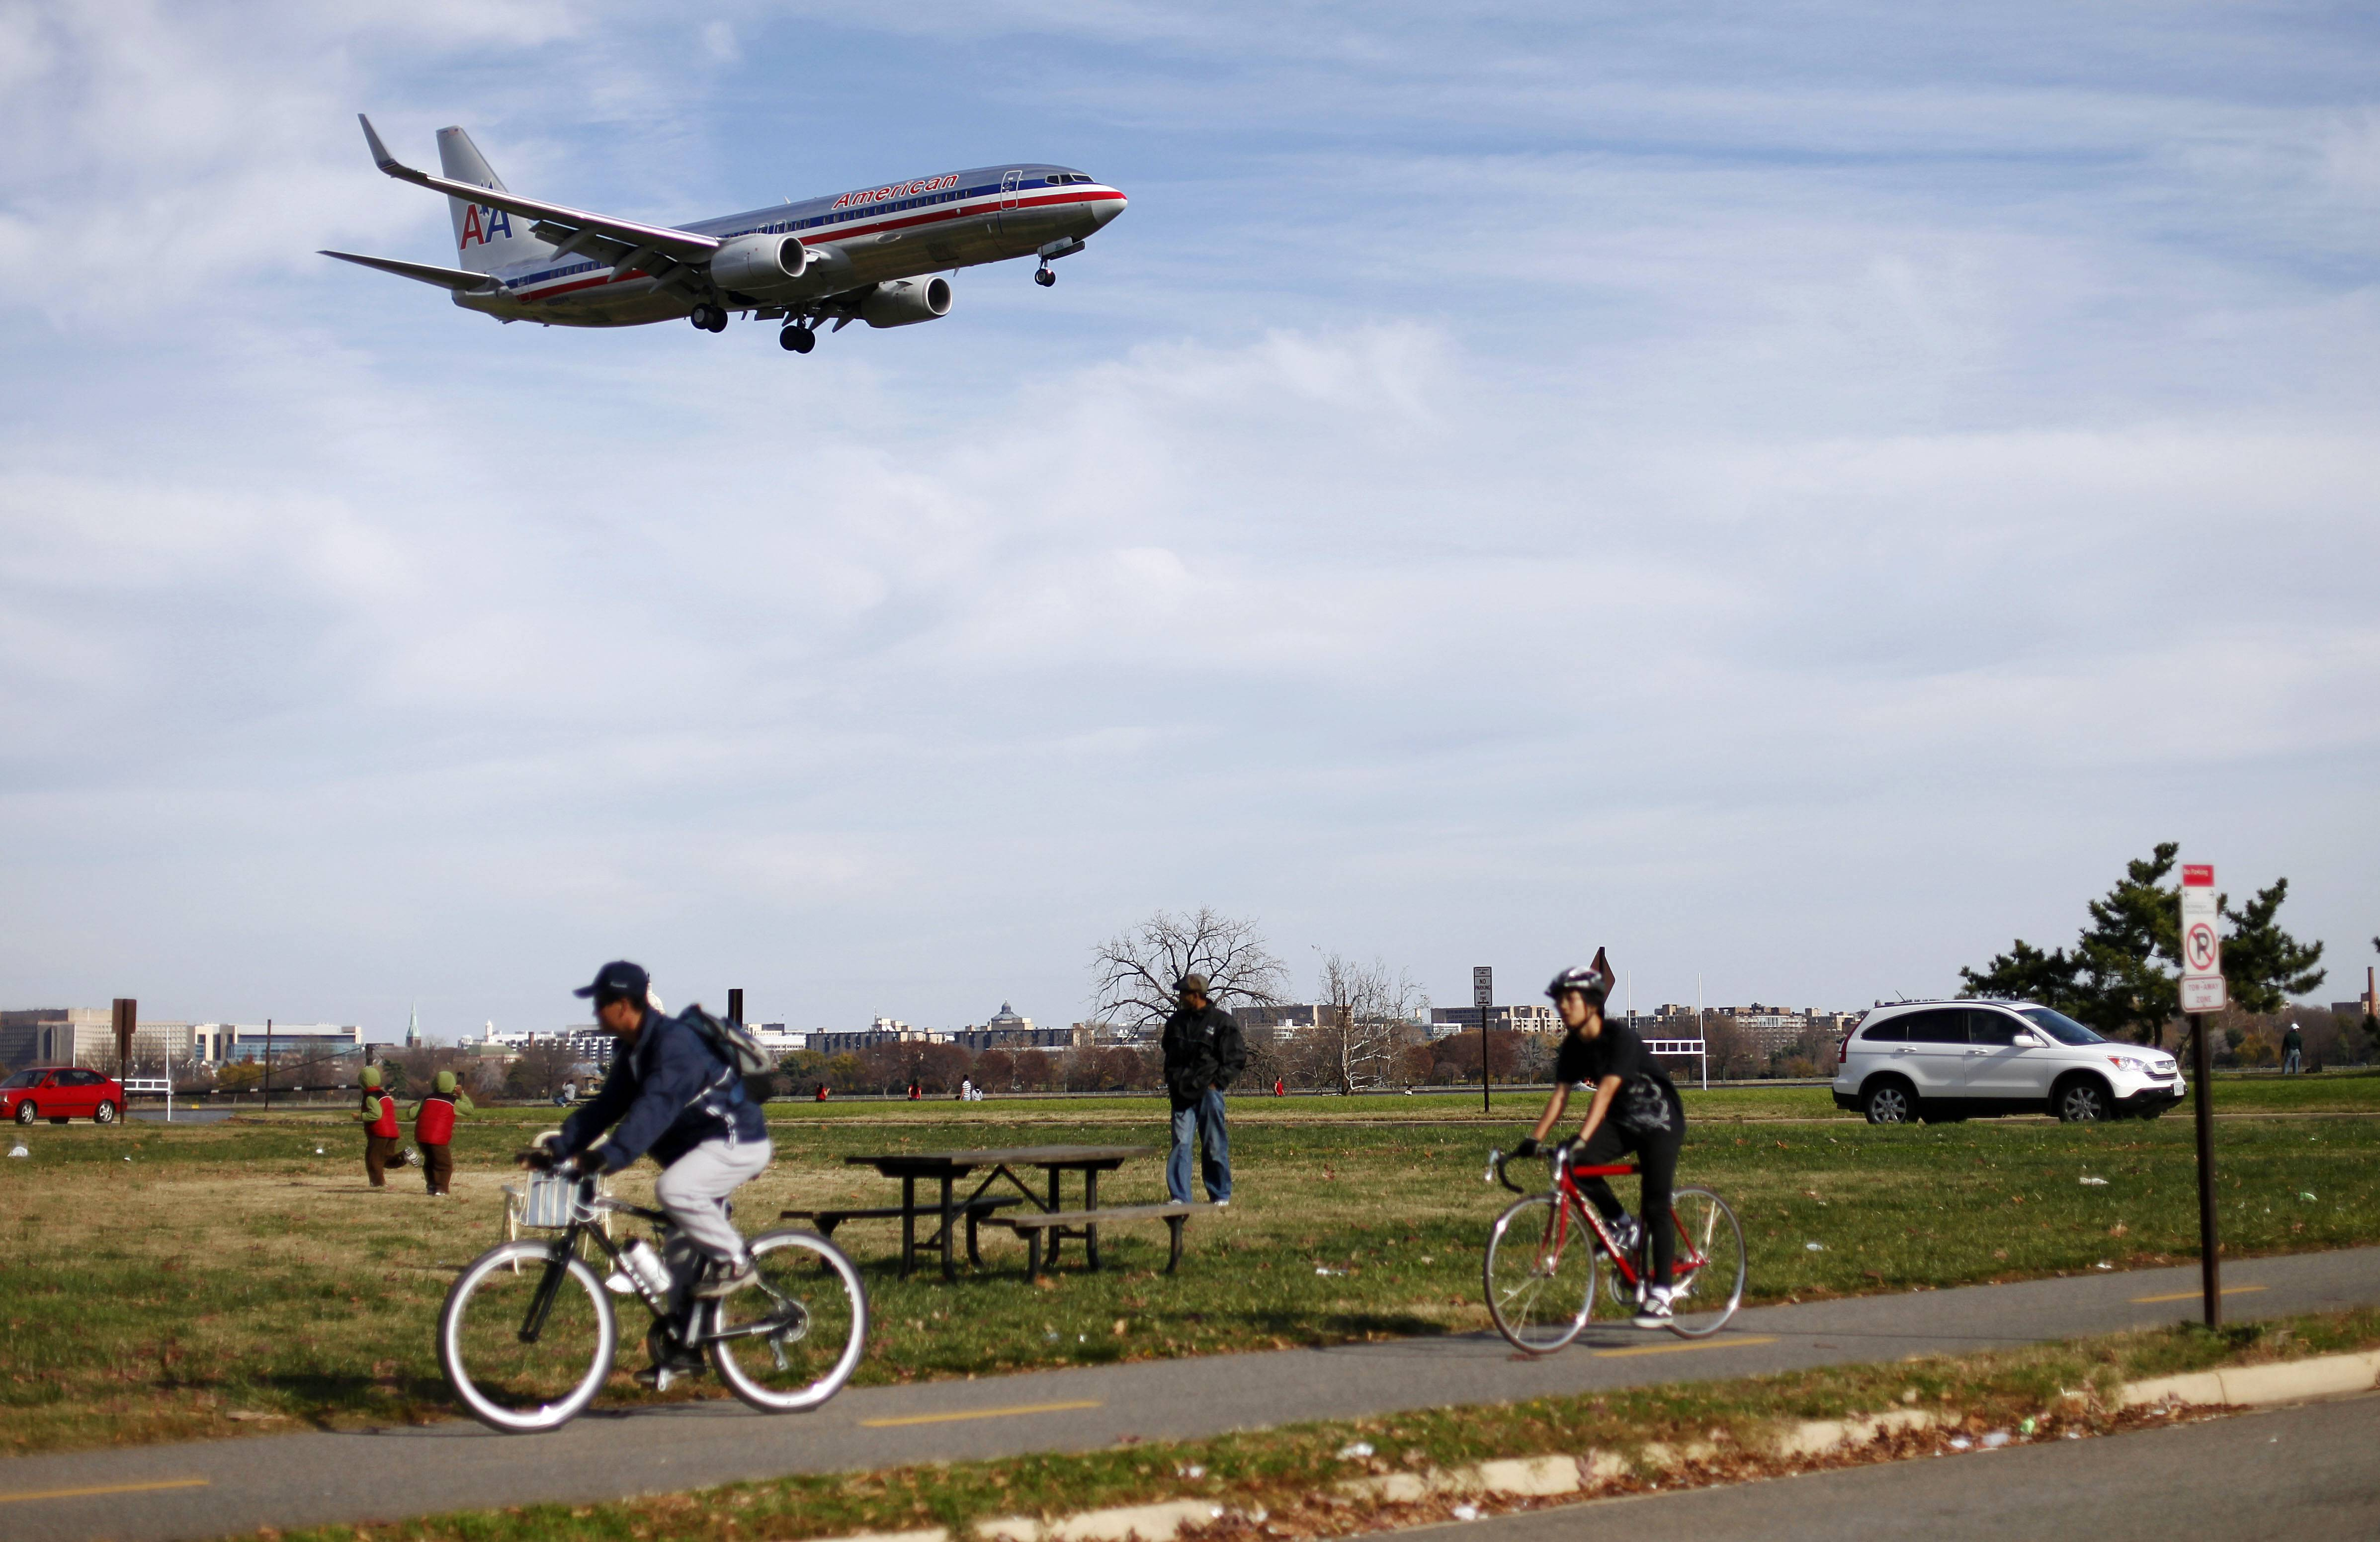 Visit Gravelly Point Park near Ronald Reagan National Airport and watch planes fly directly overhead.